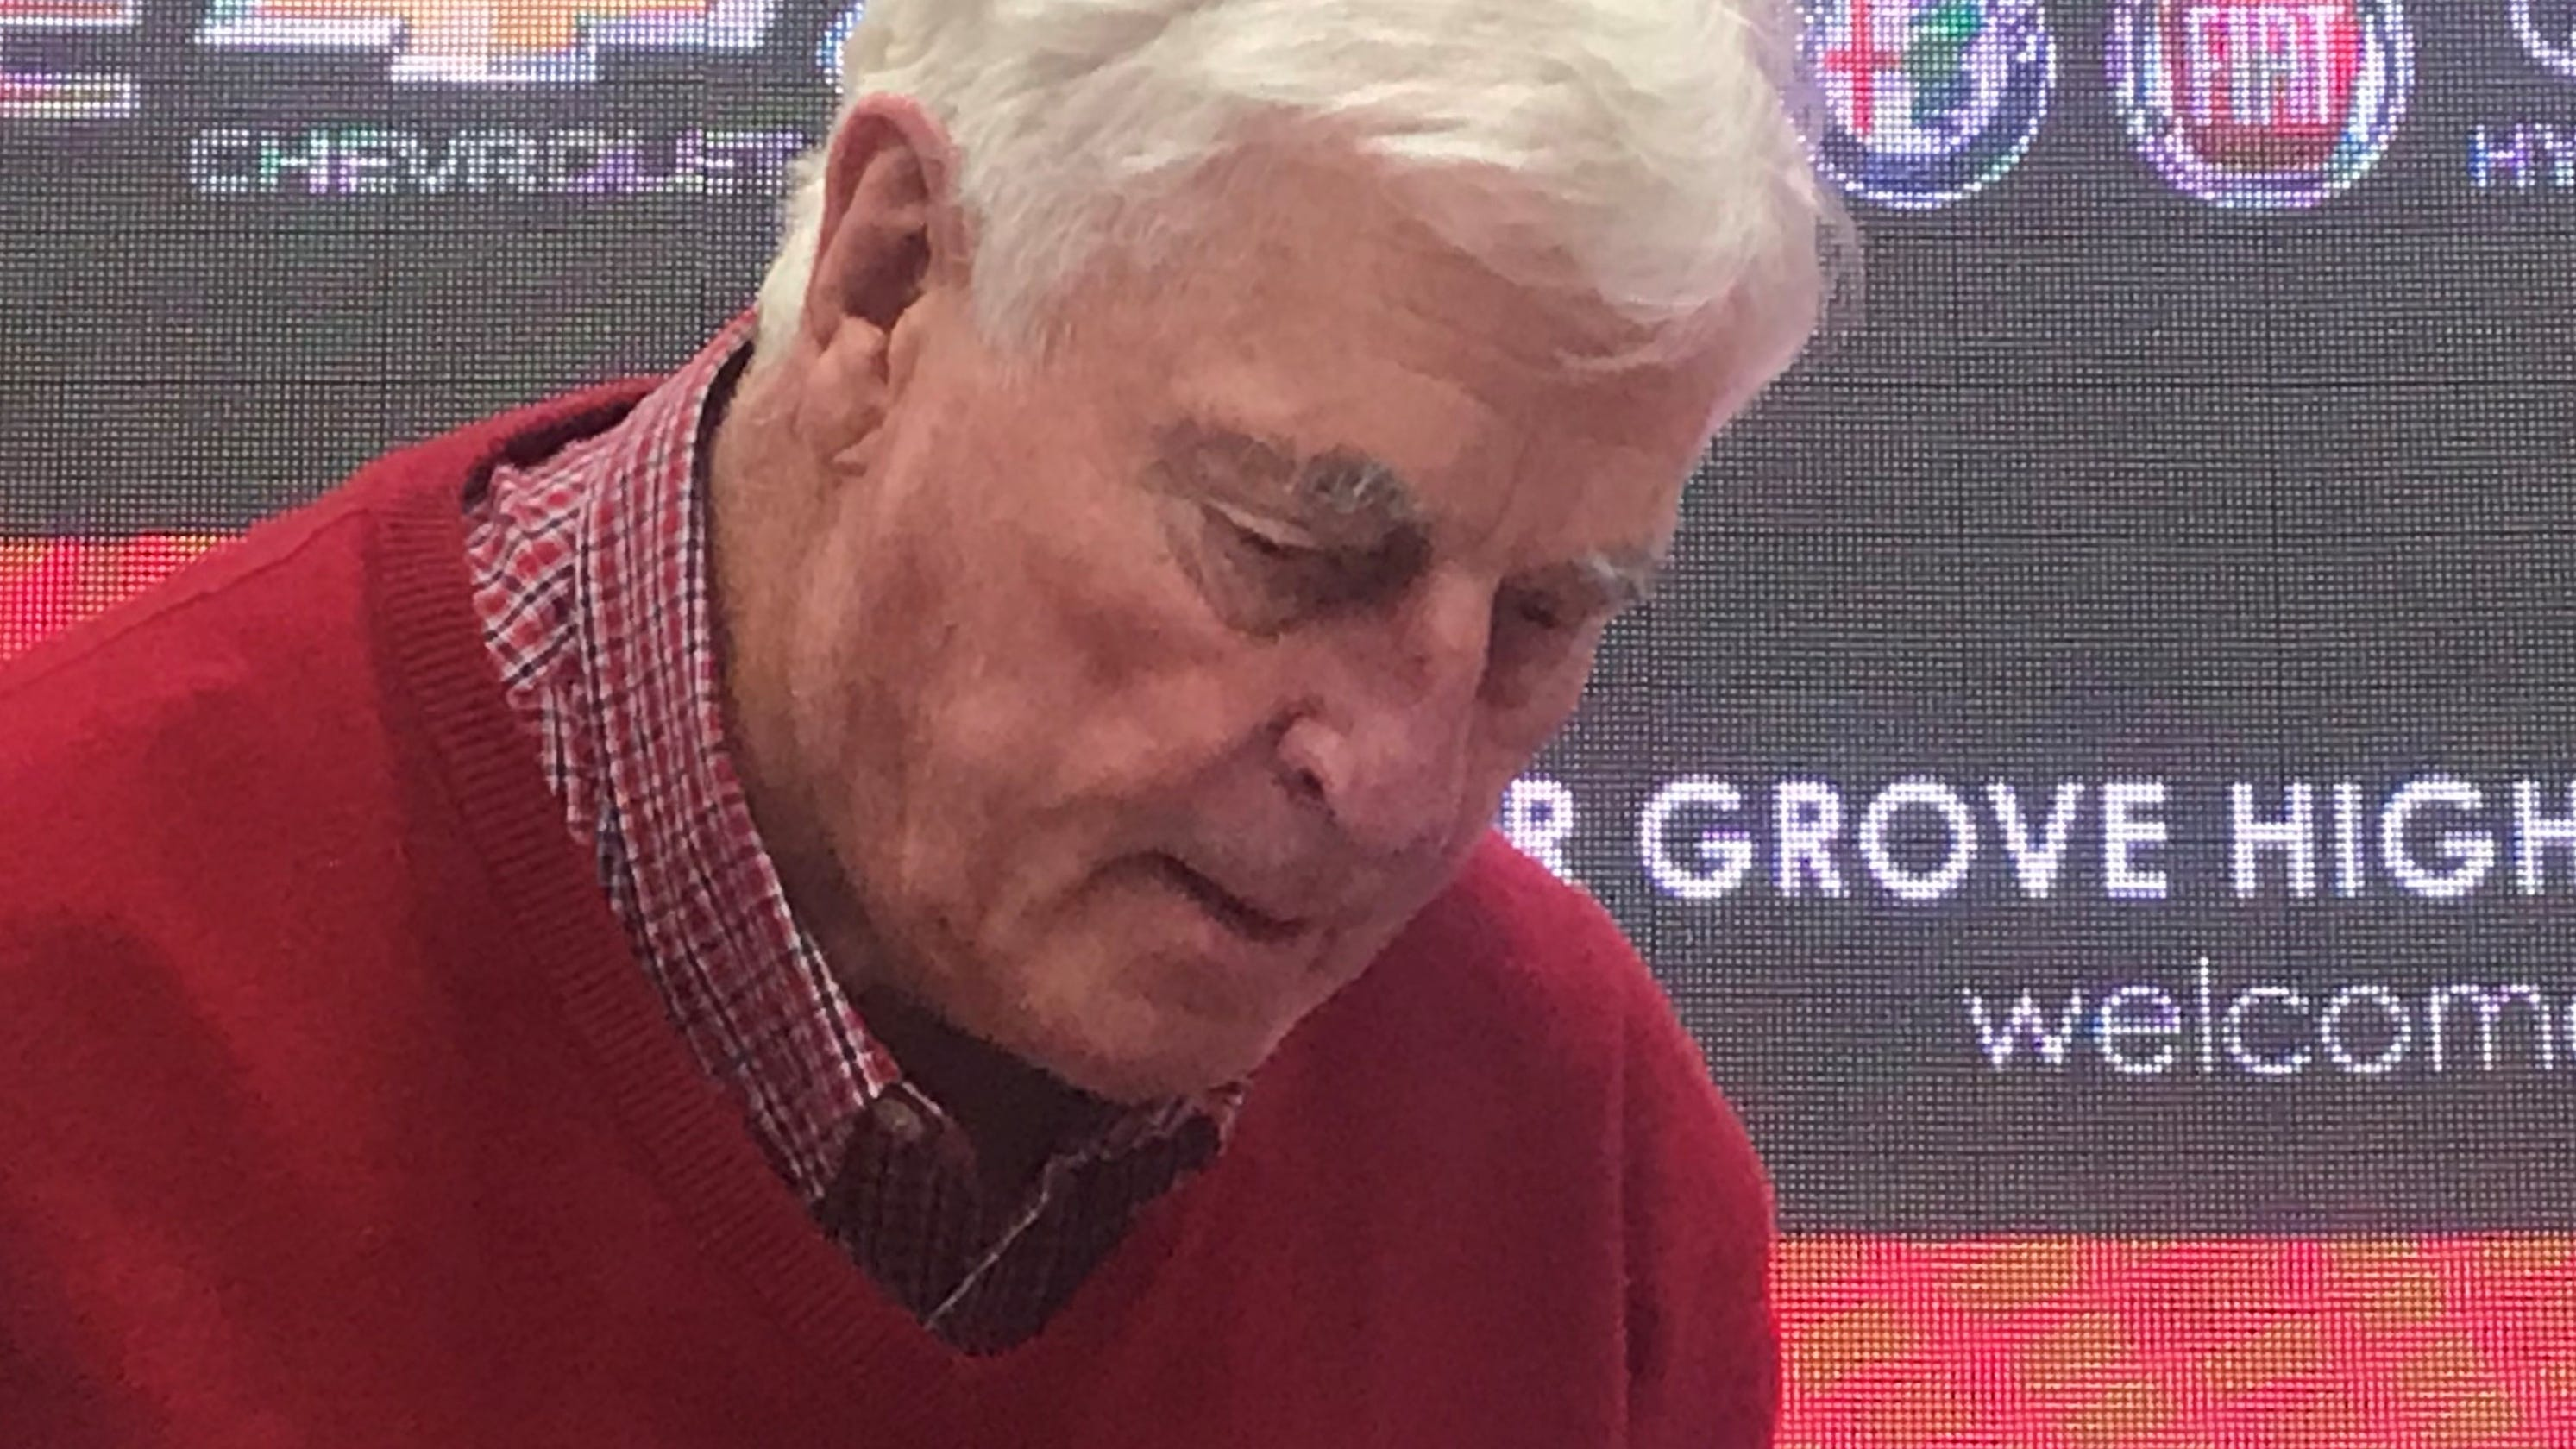 Former Iu Basketball Coach Bob Knight Witty But Struggles With Memory